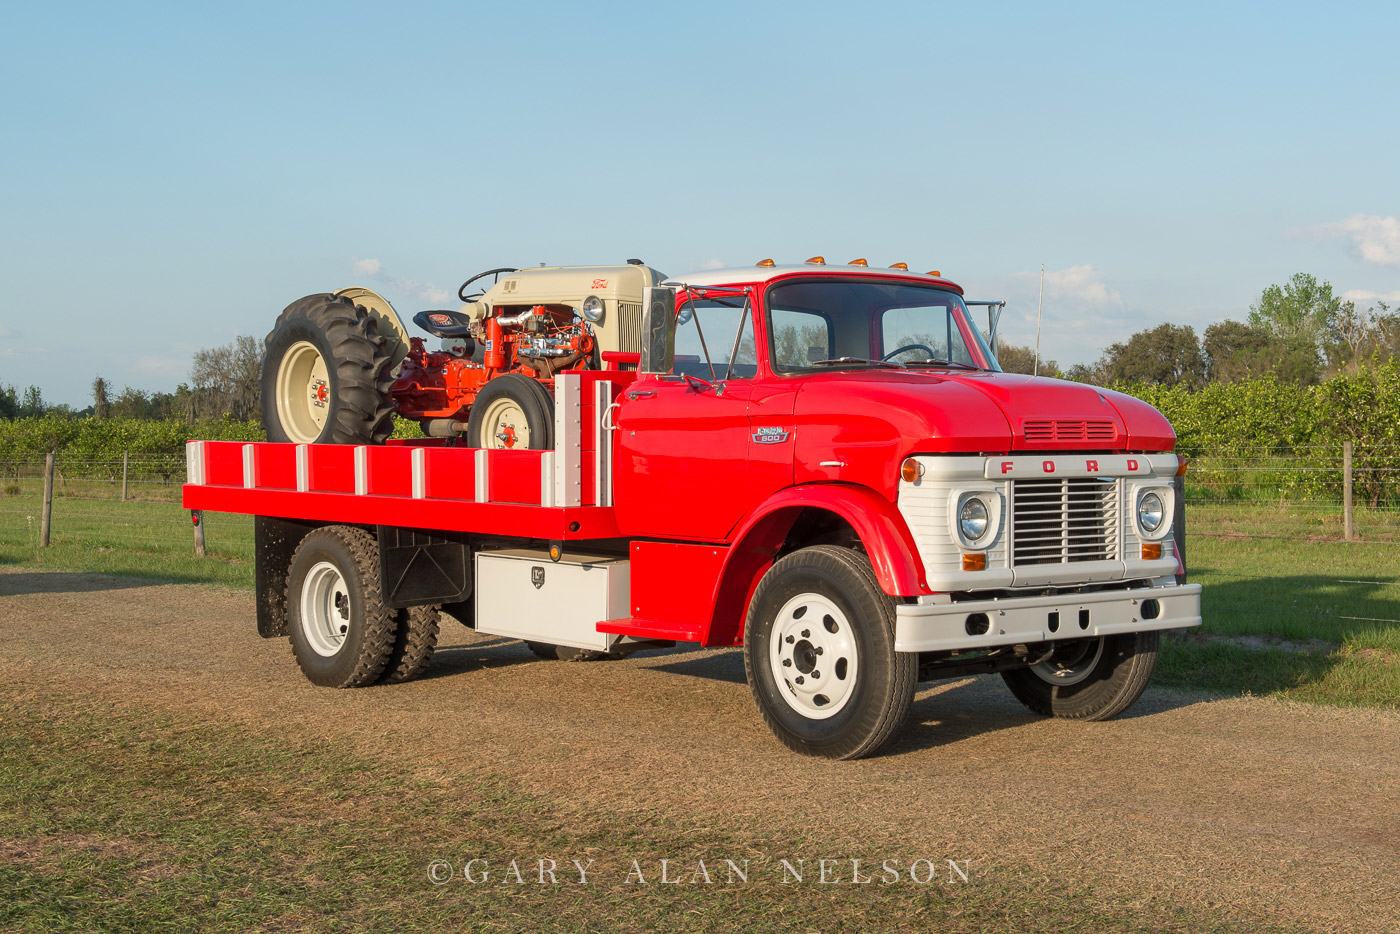 1963 Ford N600 Flatbed carrying a 1951 Ford 8N Tractor